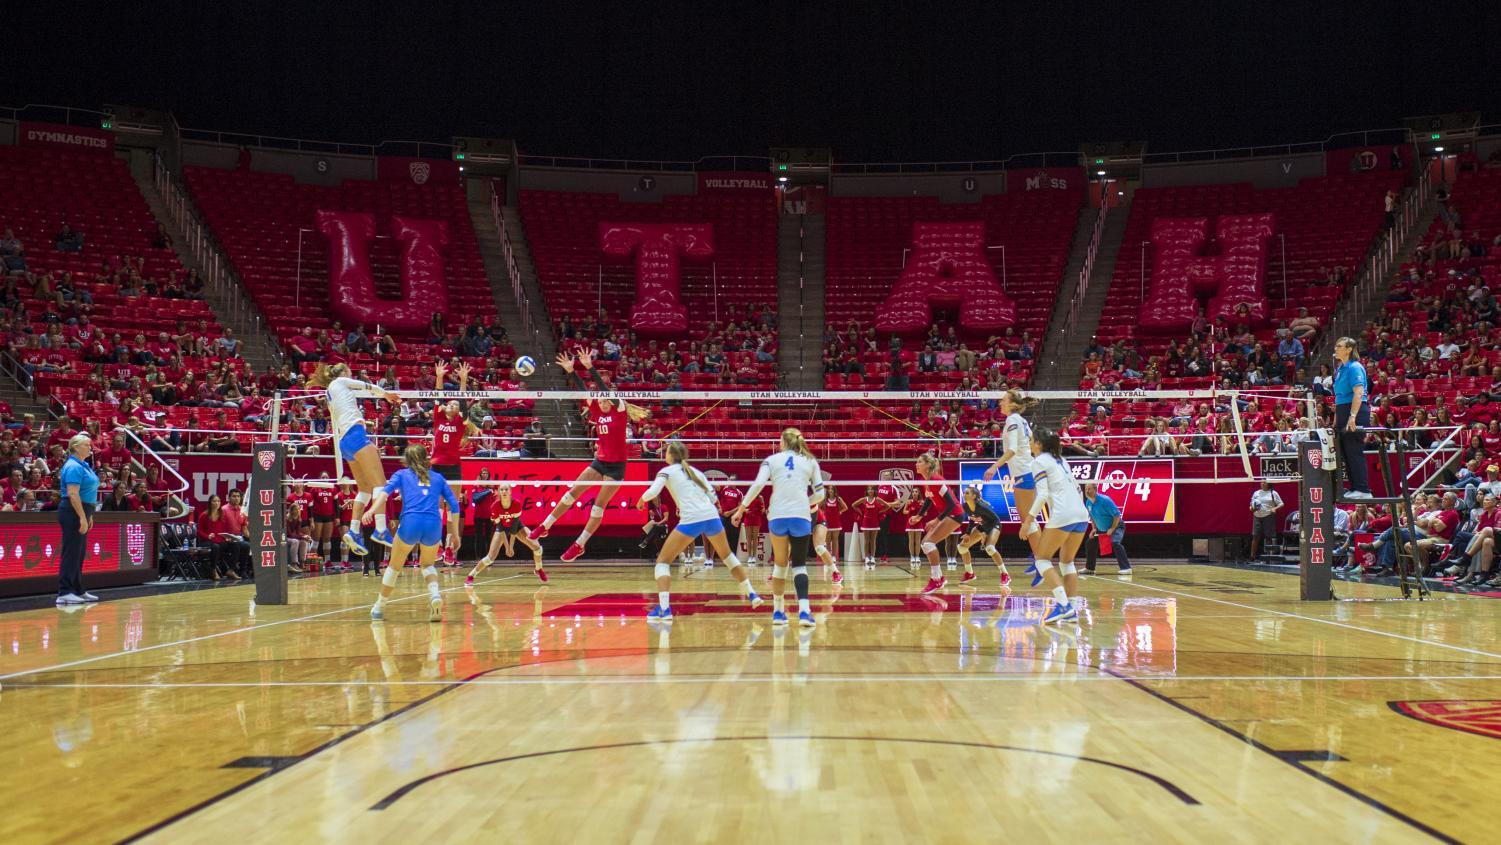 The University of Utah defends a spike in an NCAA Volleyball match vs. the UCLA Bruins at the Jon M. Huntsman Center in Salt Lake City, Utah on Friday, Sept. 21, 2018. (Photo by Kiffer Creveling | The Daily Utah Chronicle)